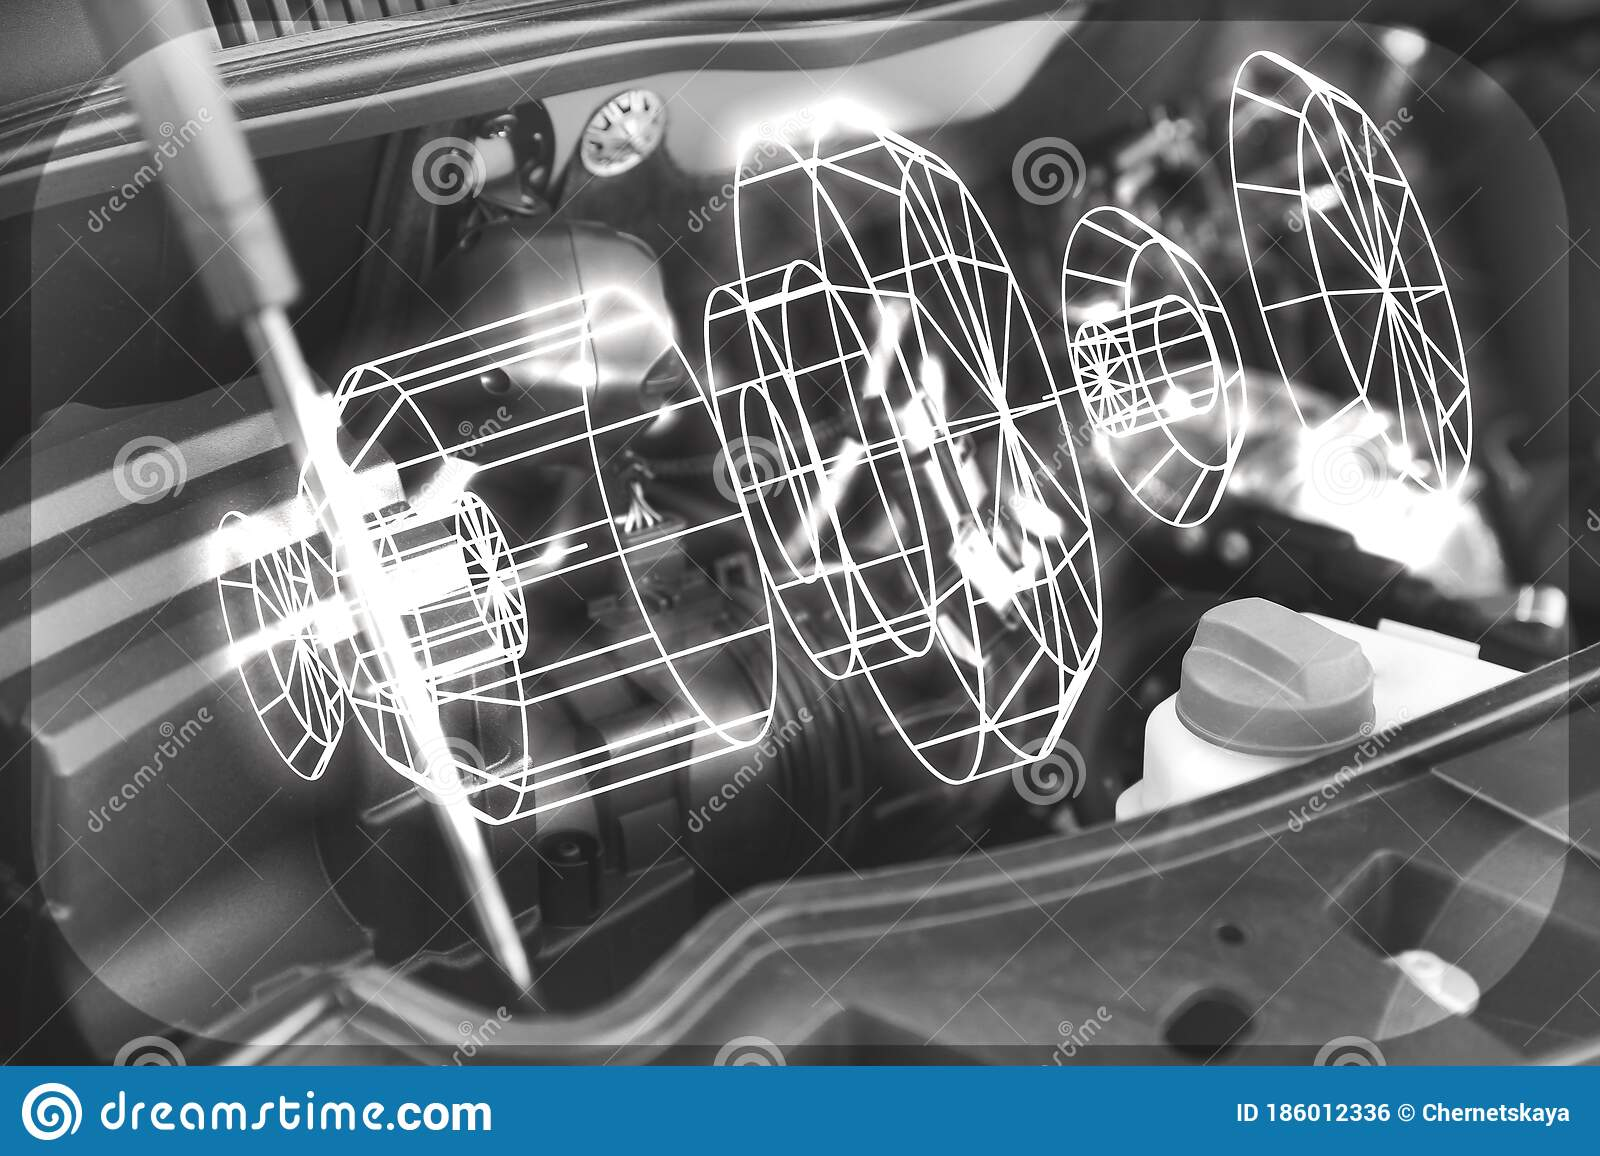 3d Model Of Detail And Car Engine Bay Stock Photo Image Of Automotive Geometric 186012336